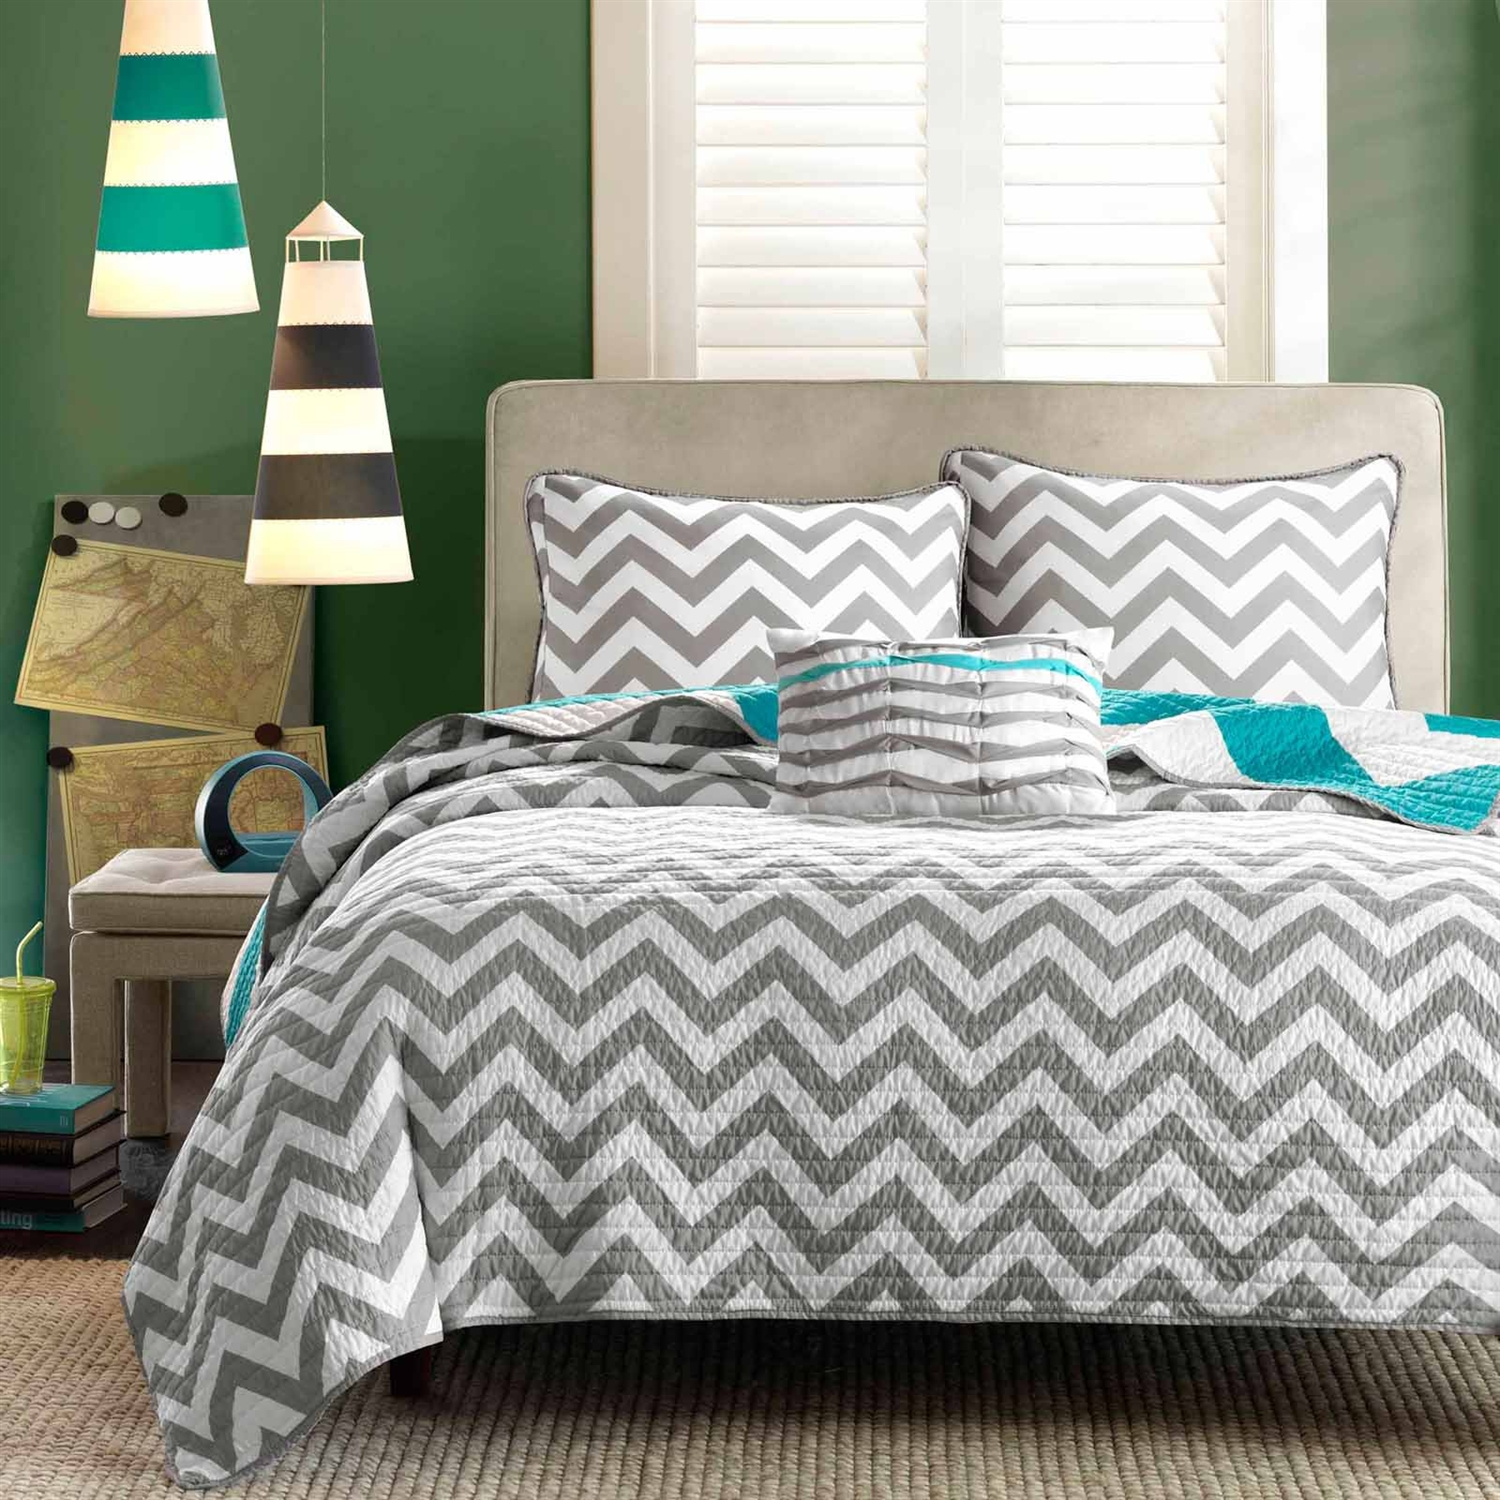 target with pinterest duvet coverlet and on charming floor nice quilts brown for qu king cover modern covers comforters also bedroom quilt cotton bed kohls sets queen time wooden size curtain ideas comforter california white